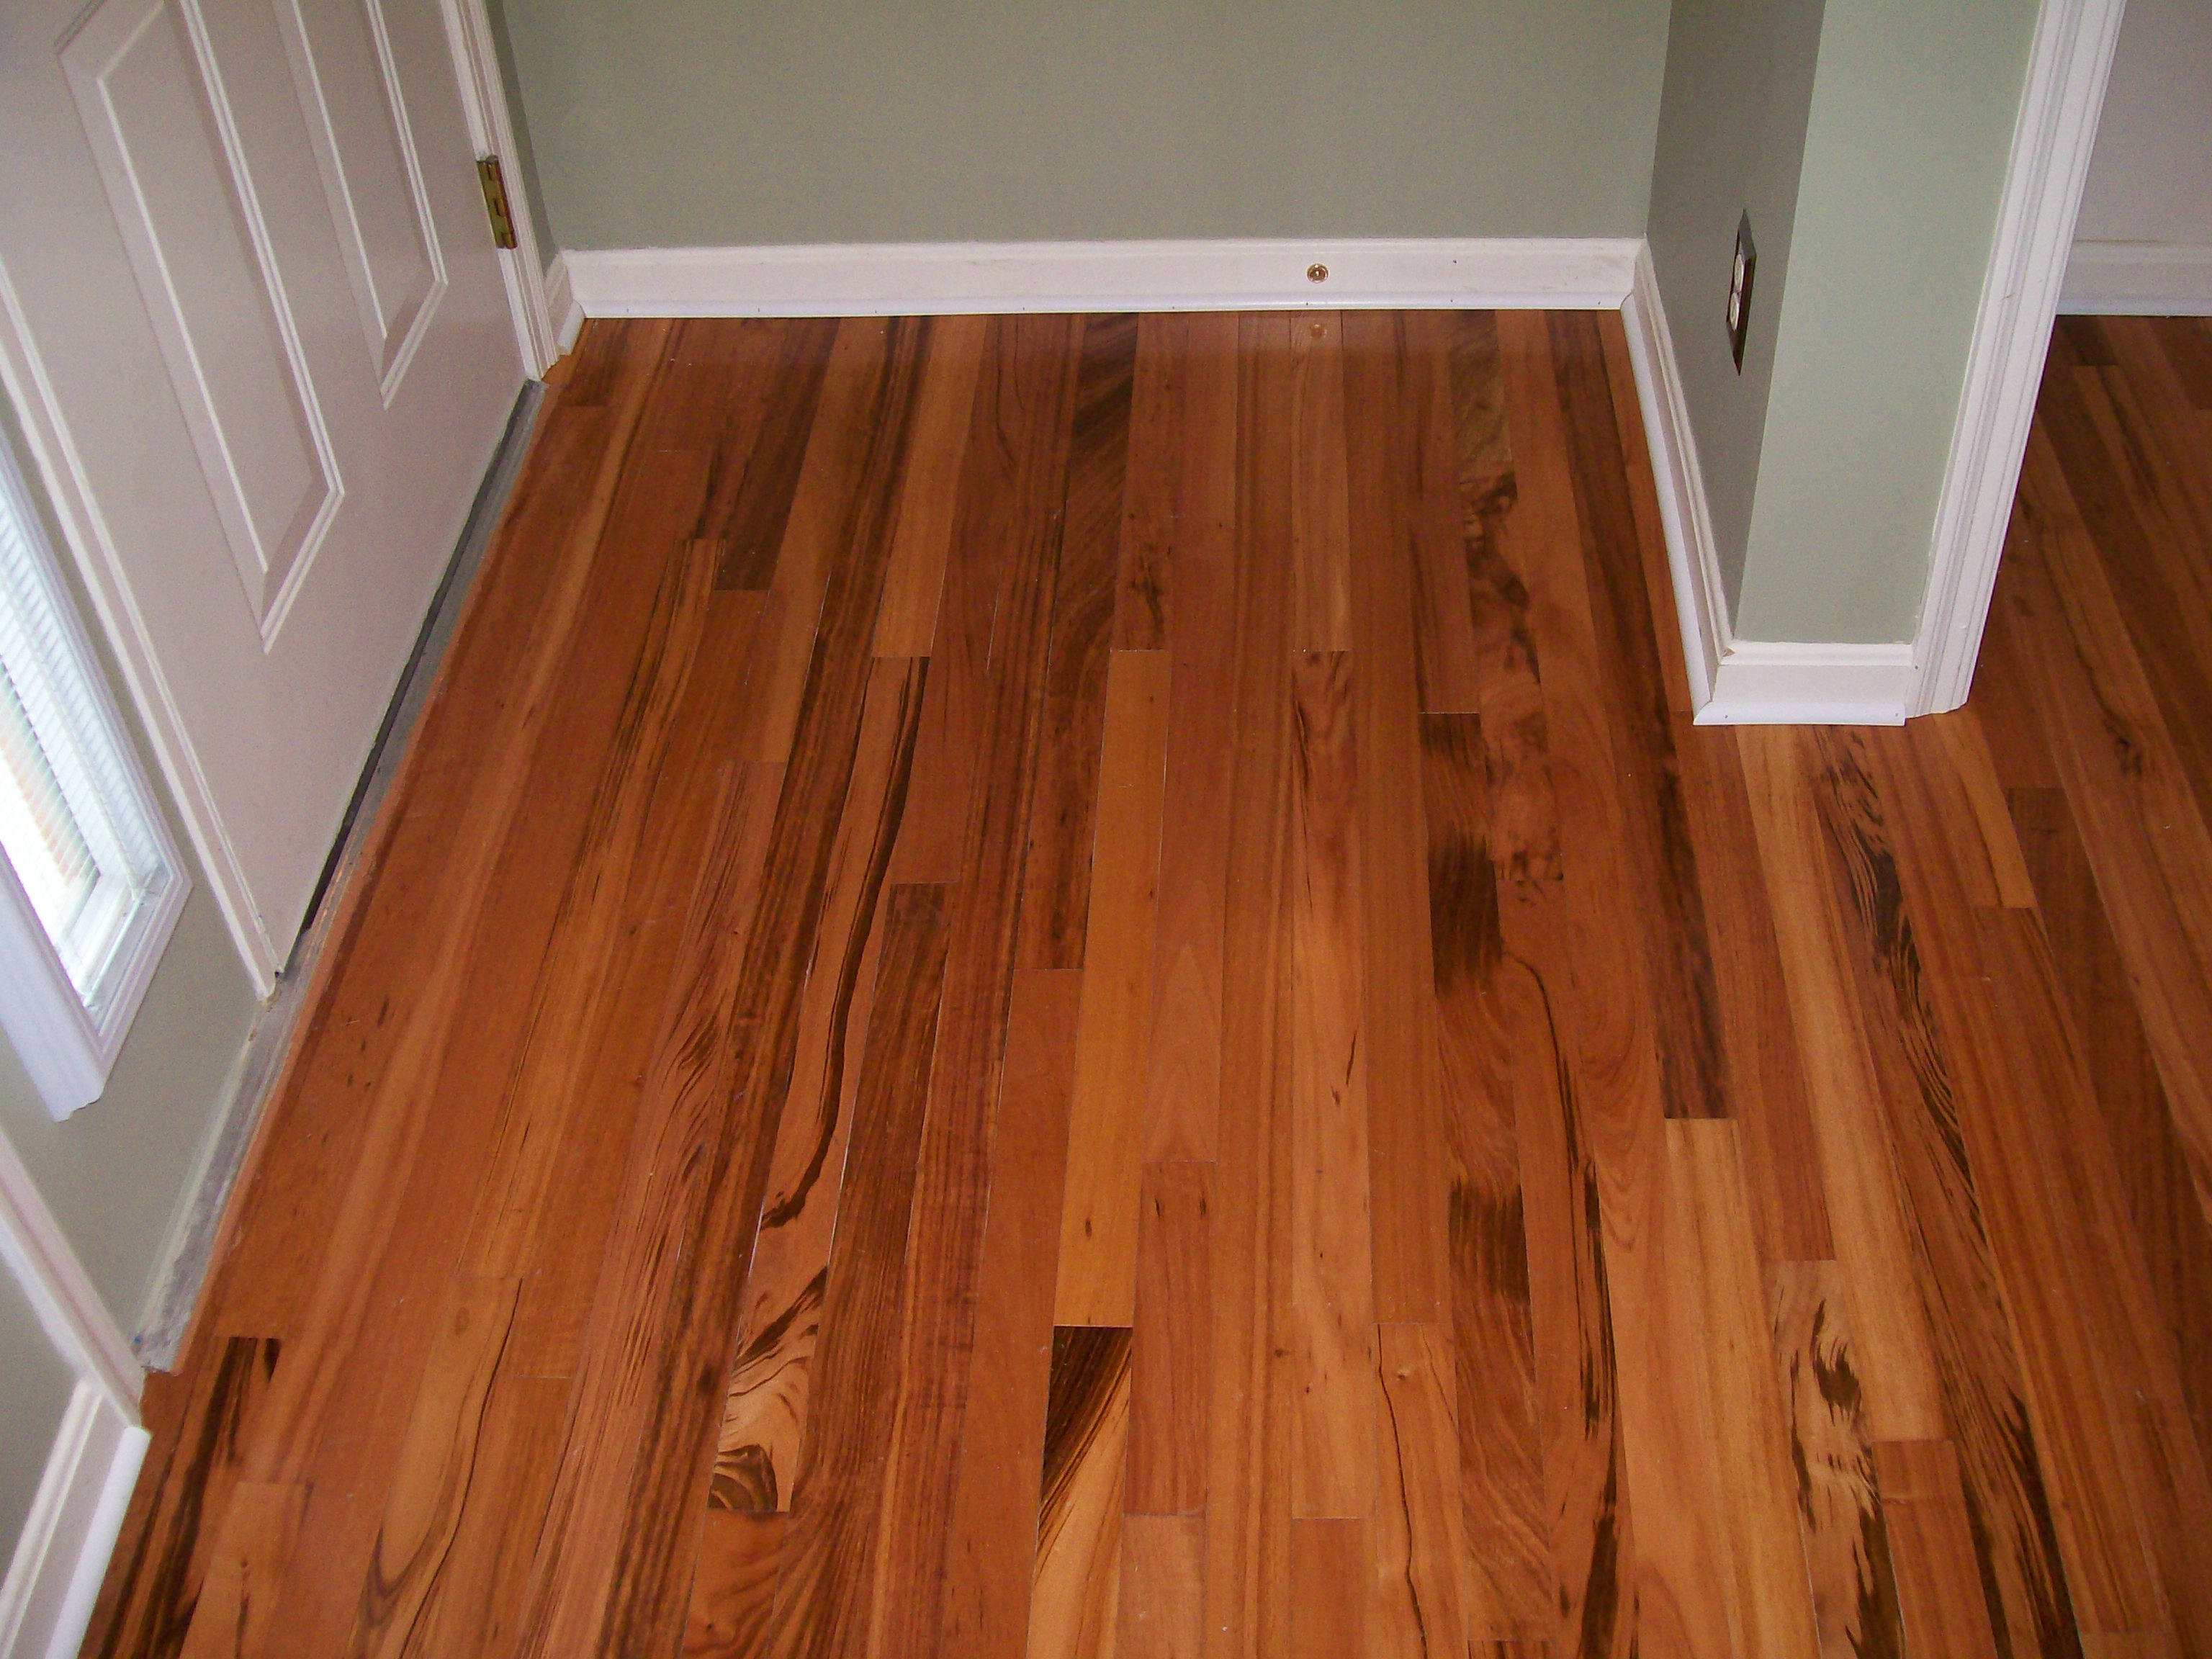 Flooring Gorgeous Costco Wood Flooring For Home Flooring